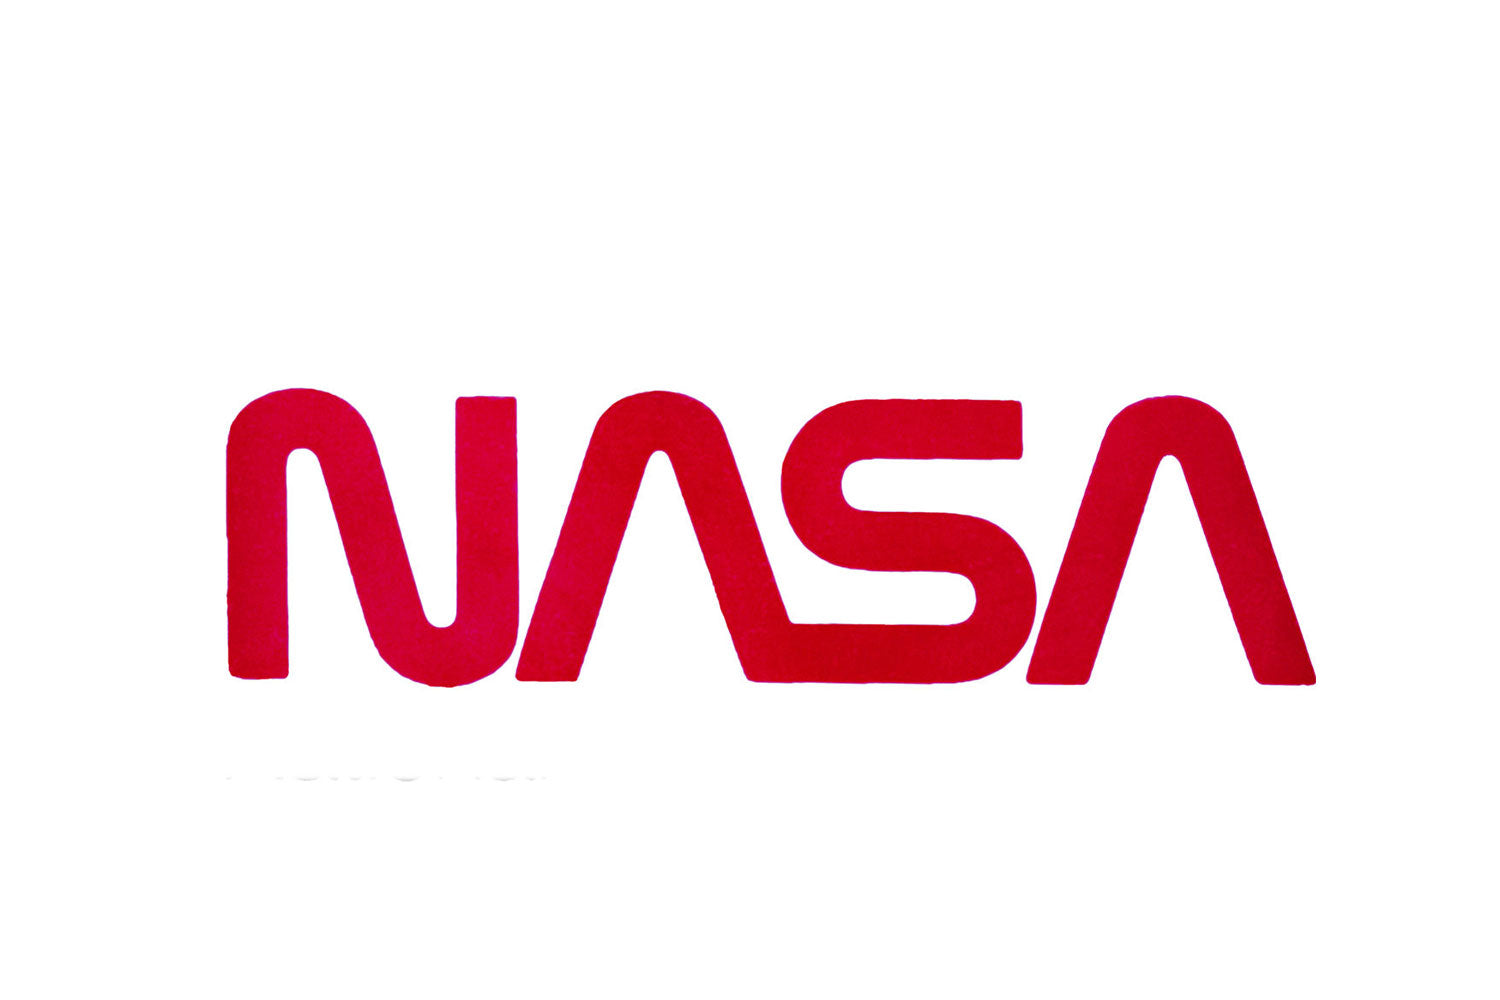 NASA's Worm Logo is Making a Comeback in Space